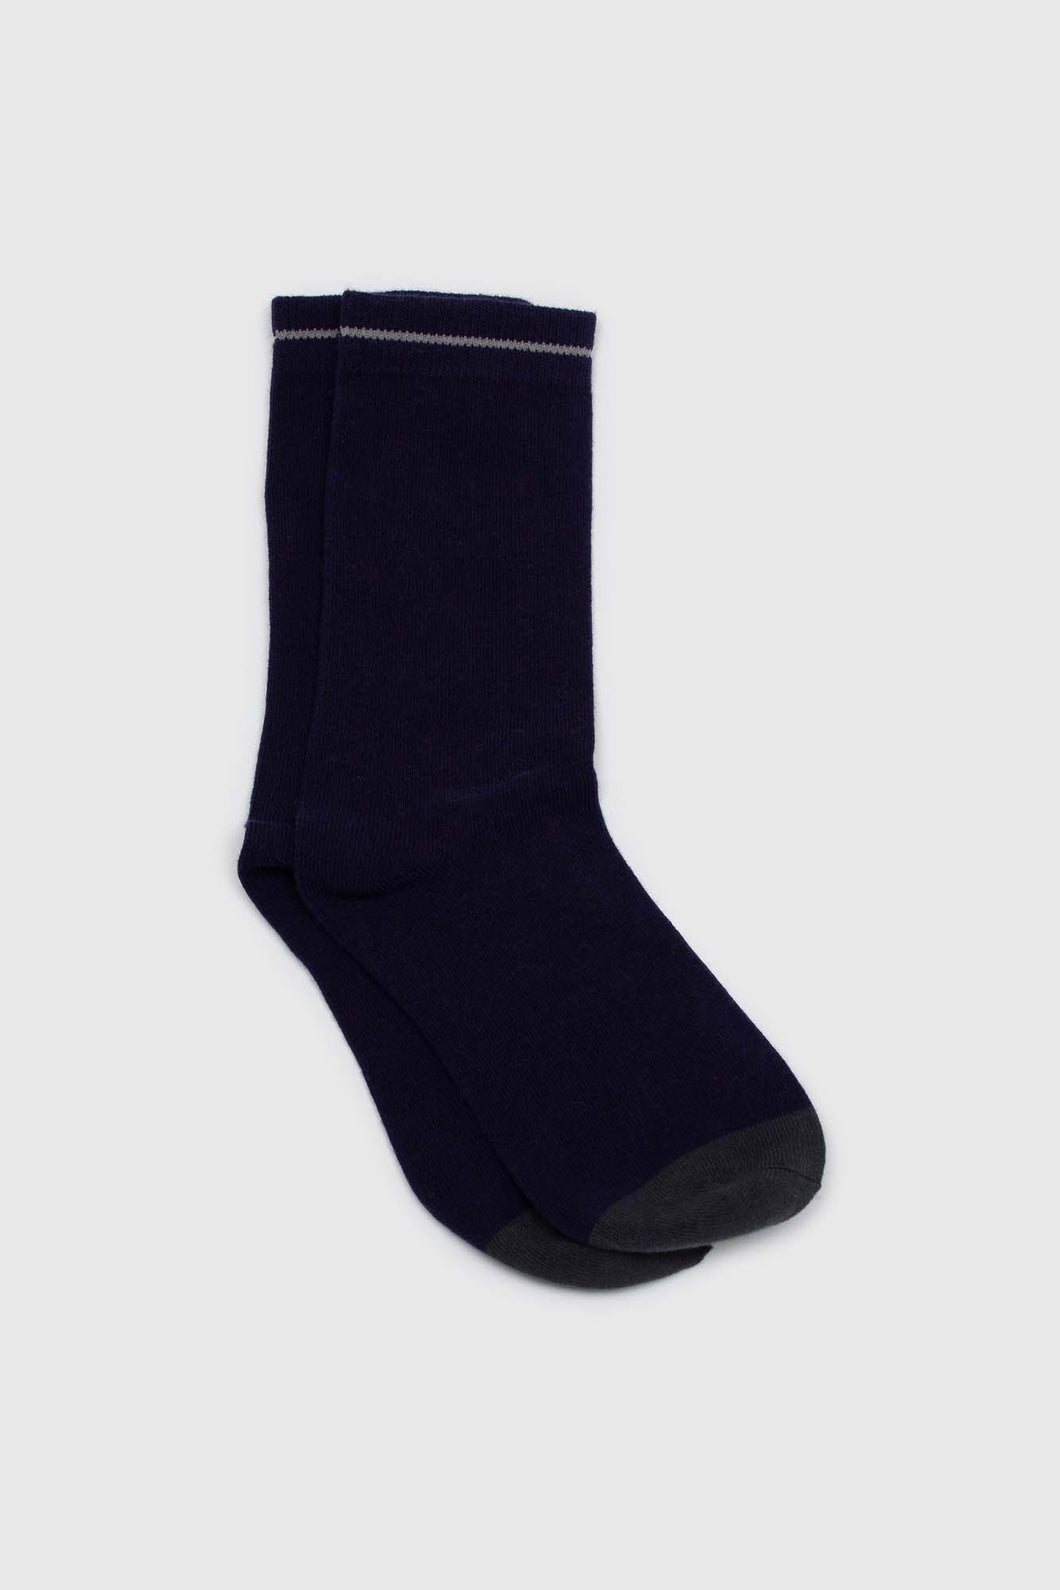 Navy and charcoal colorblock long socks1sx